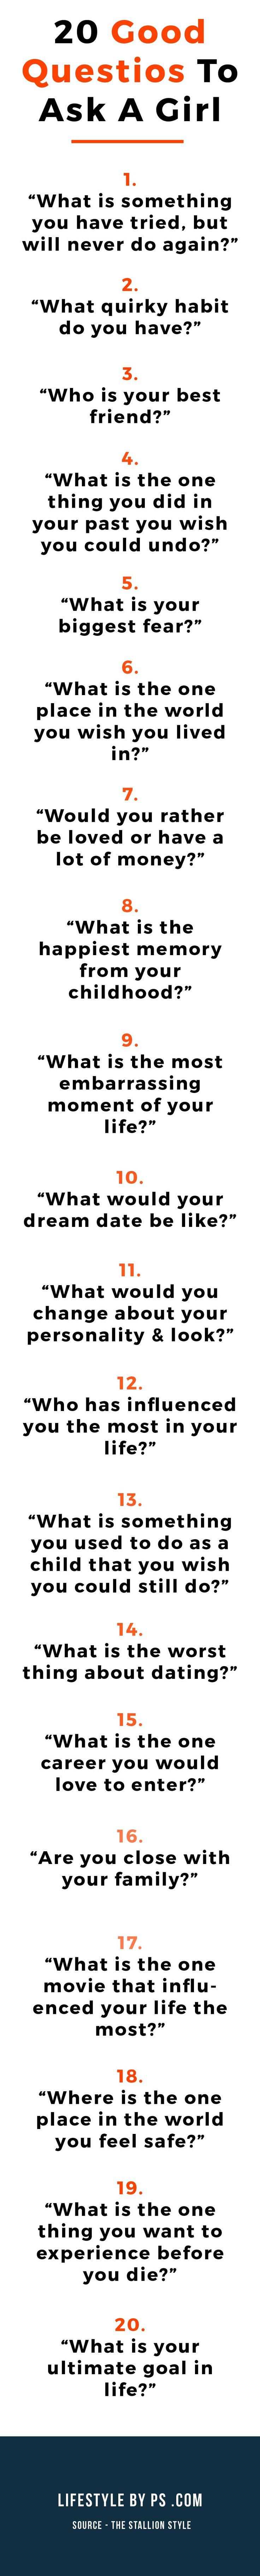 17 best ideas about good questions to ask dating 150 questions to ask a girl you want to impress